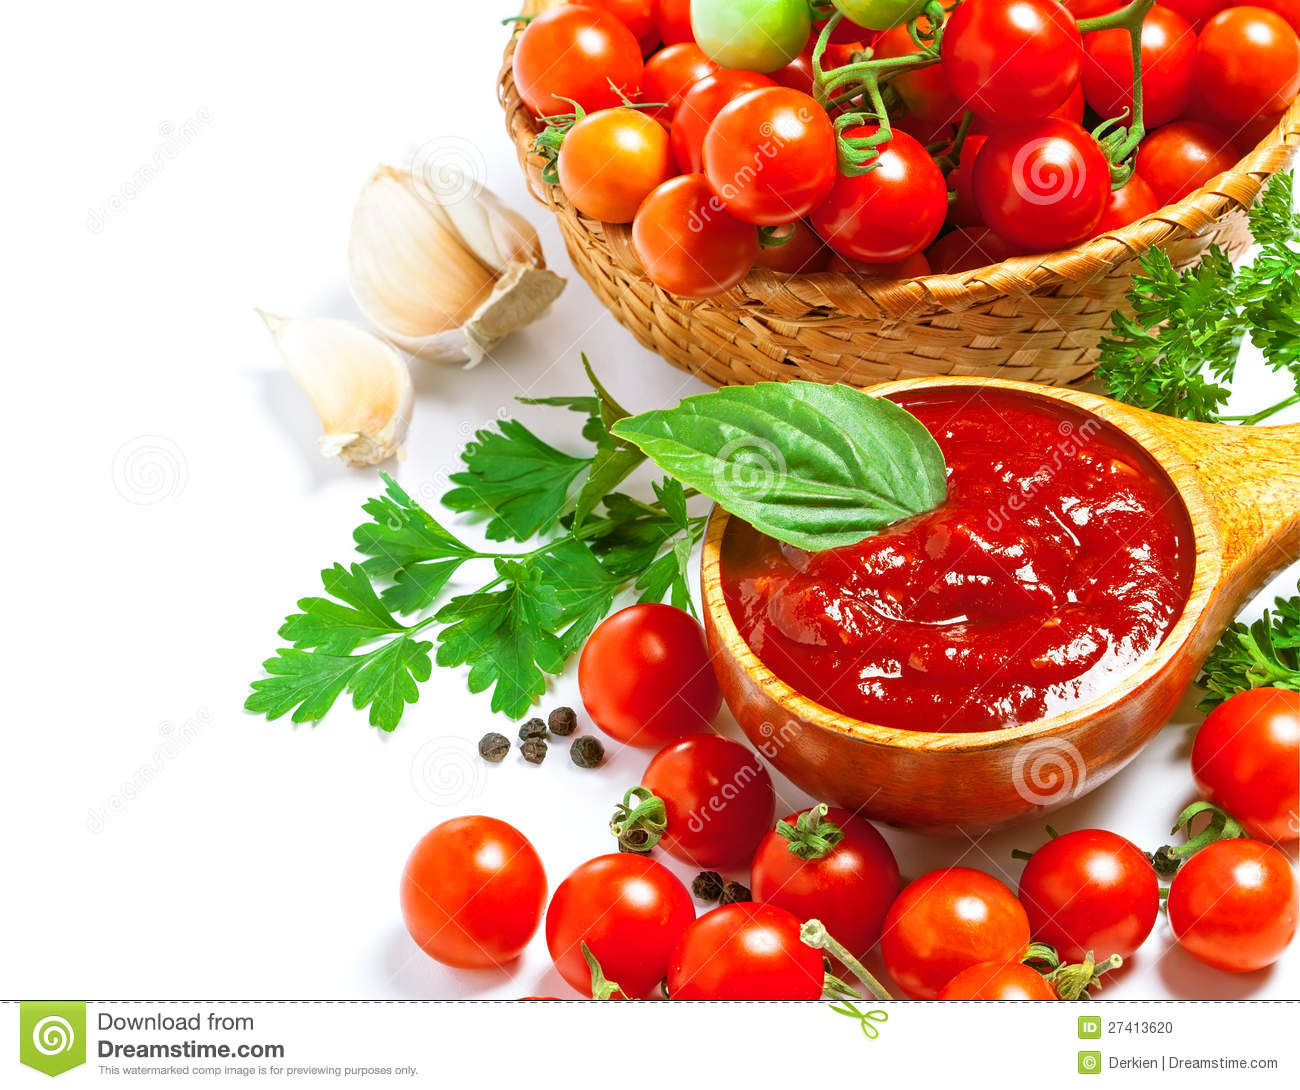 Red tomato sauce in a wooden spoon and ingredients, isolated in white.